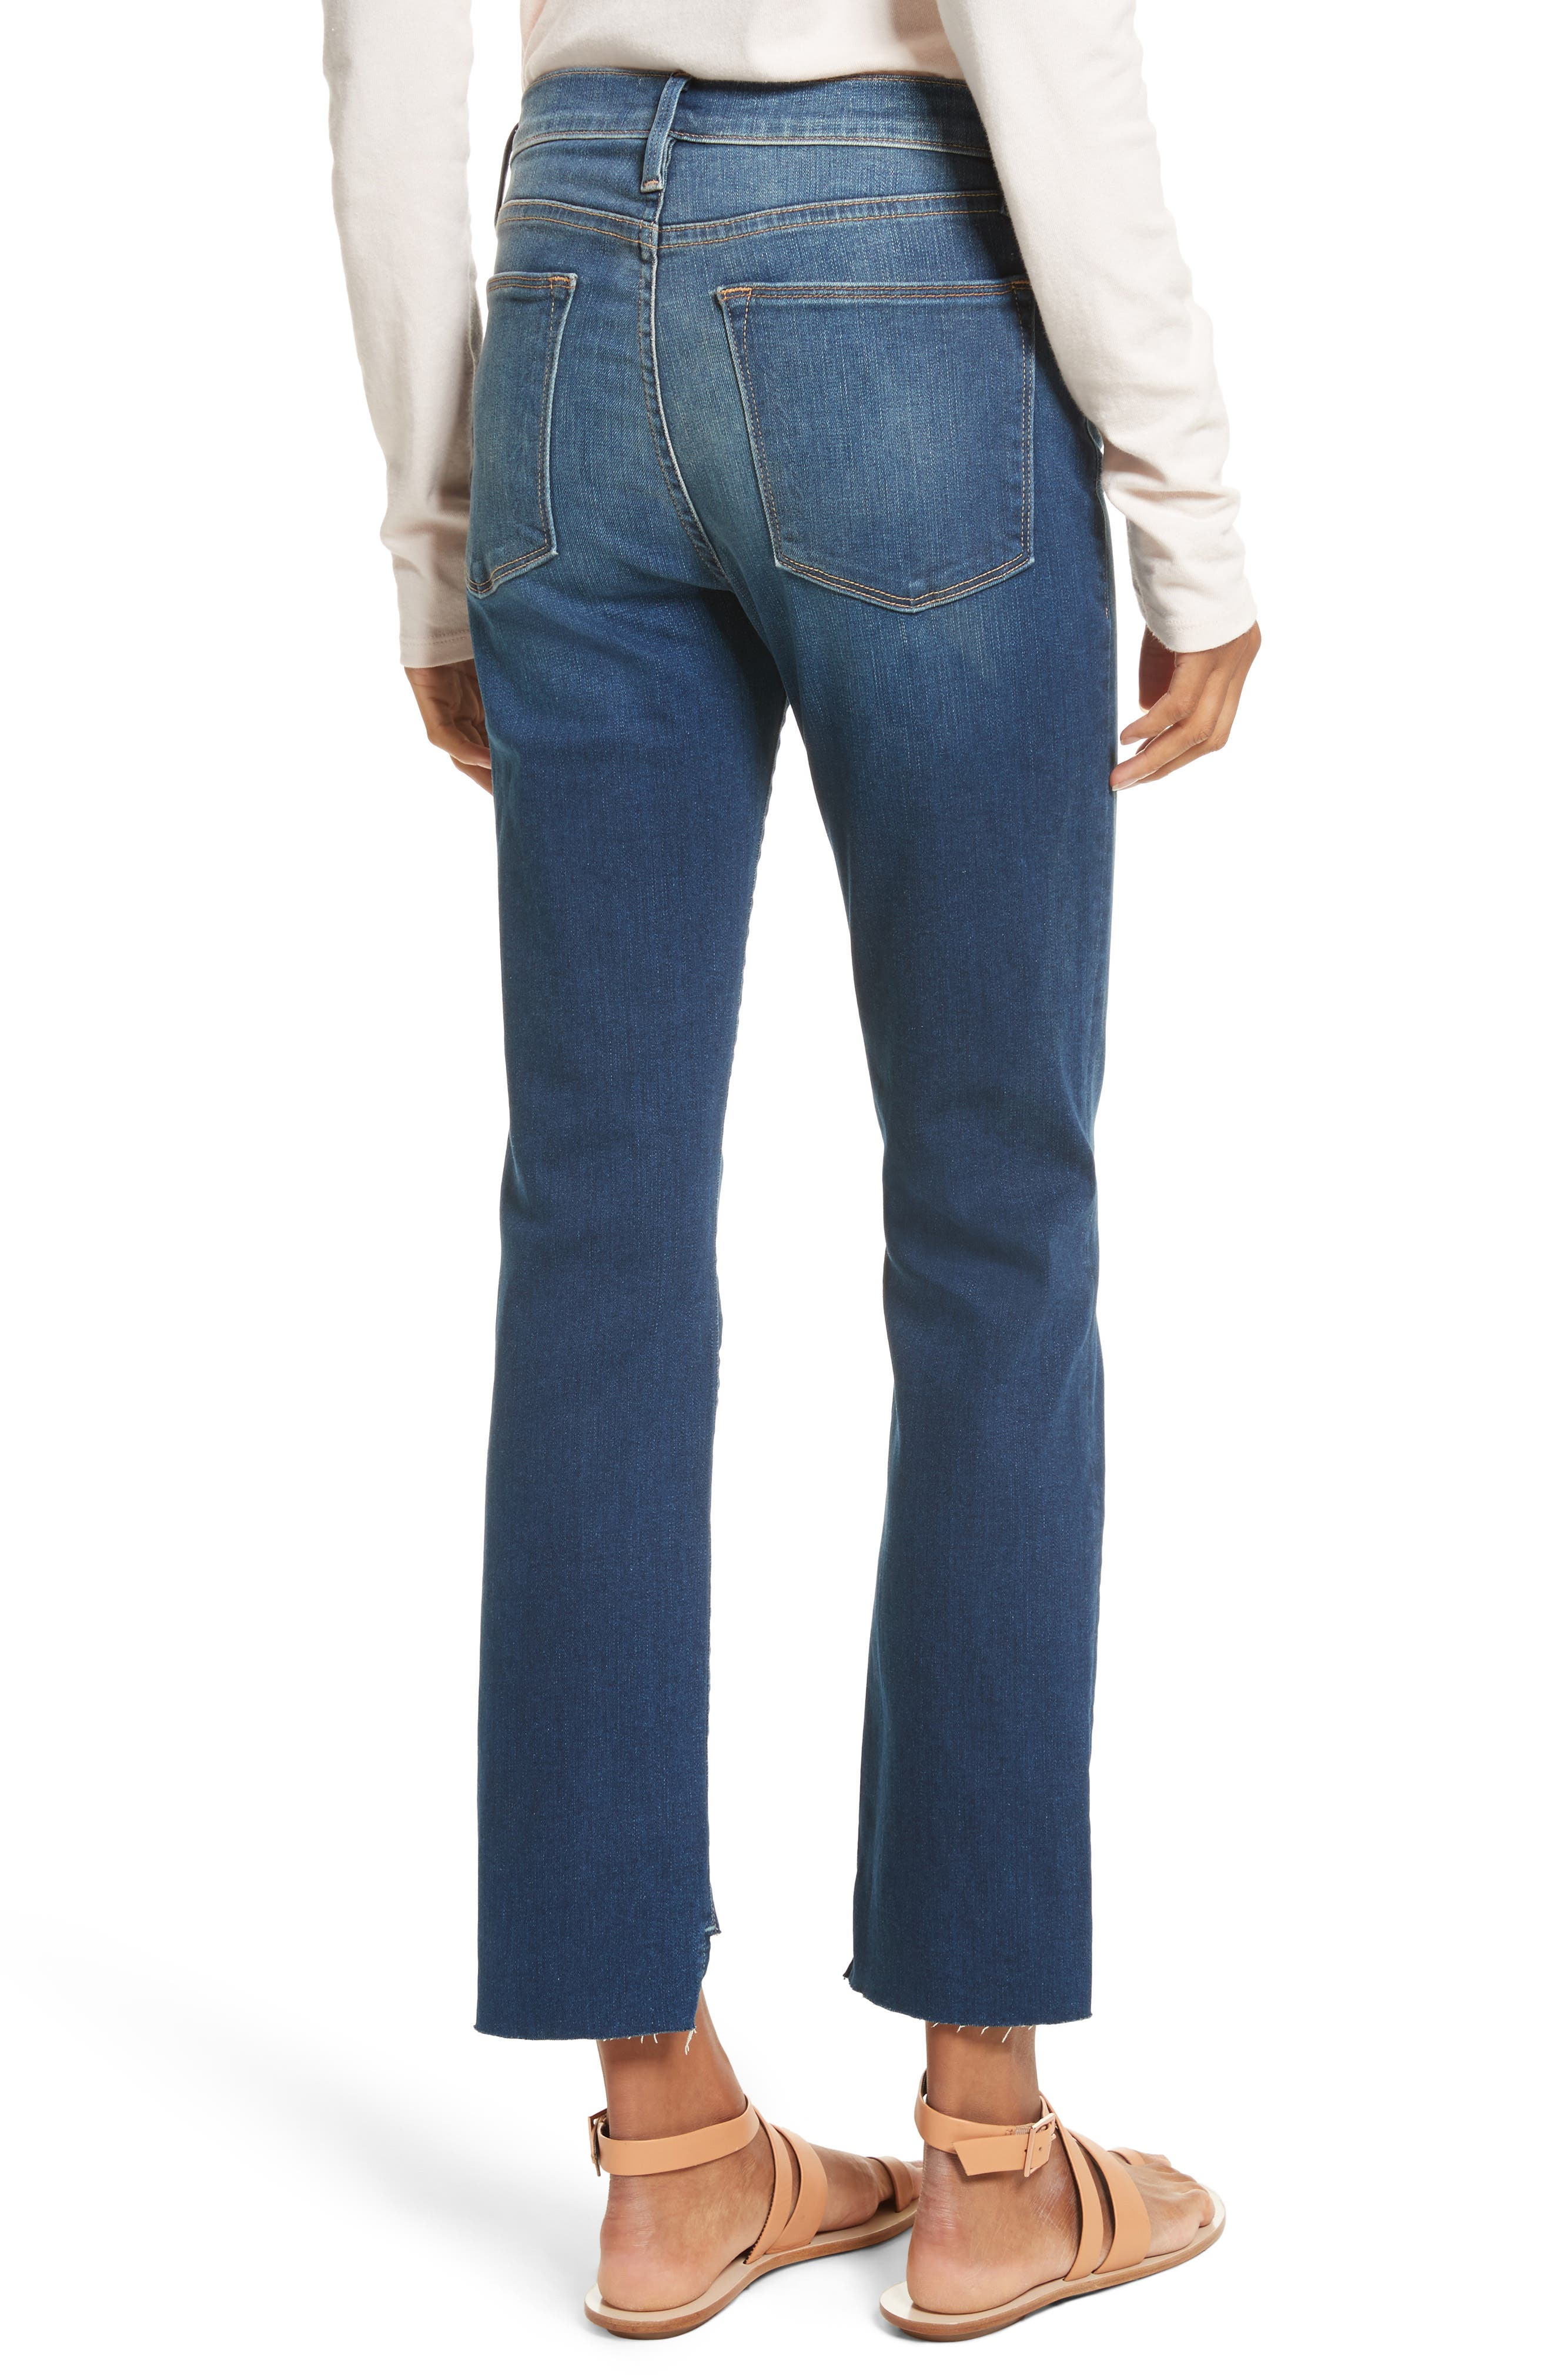 Le High Straight High Waist Raw Stagger Jeans,                             Alternate thumbnail 3, color,                             Murrayfield